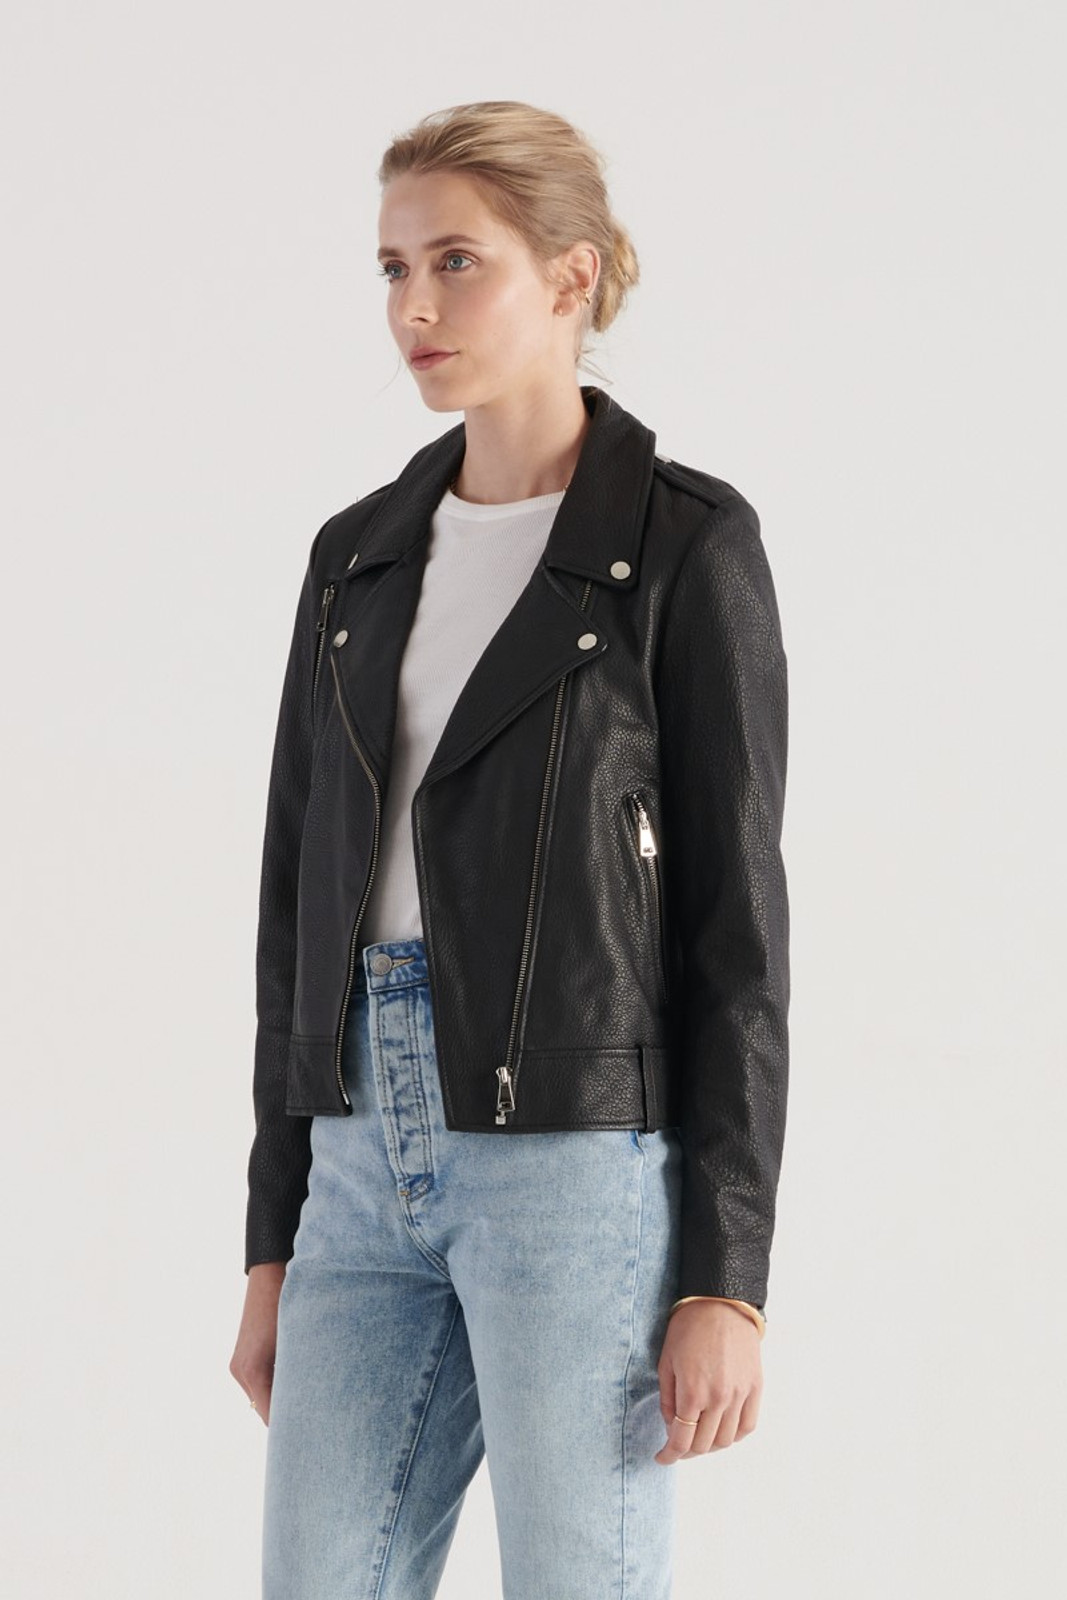 Elka Collective WOMENS Black Carrie Leather Jacket 0